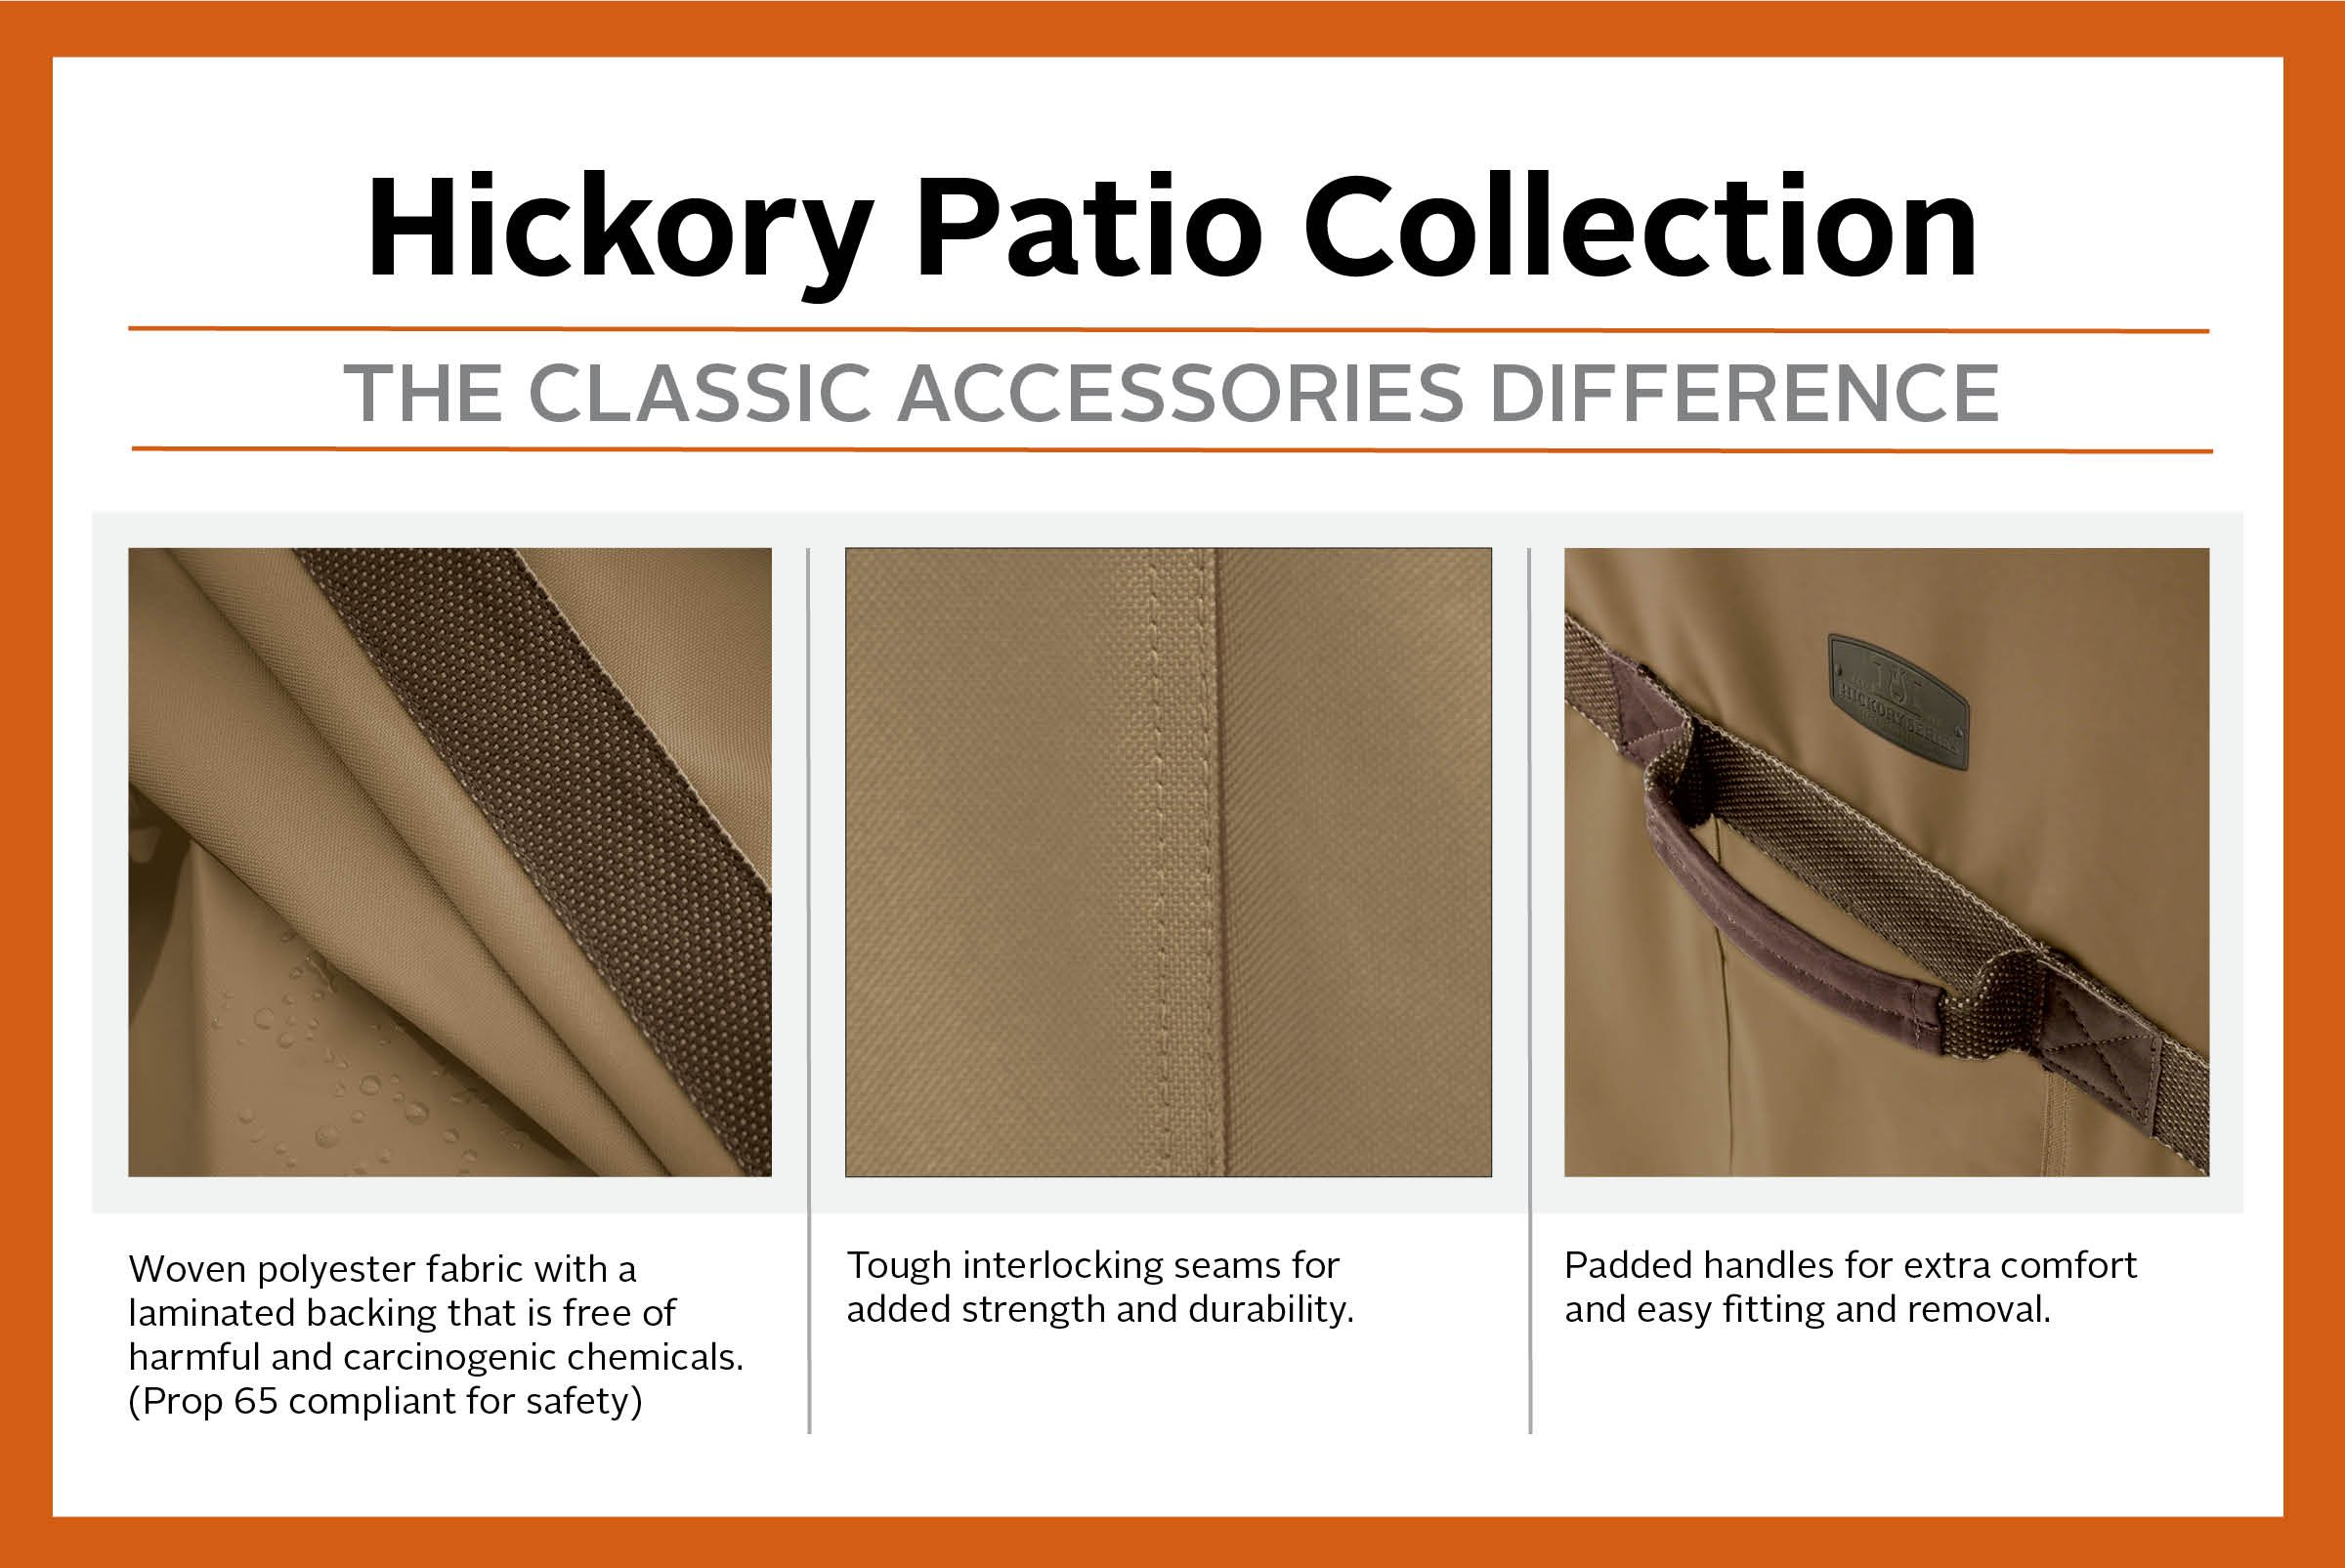 Classic Accessories Hickory Heavy Duty Standard Patio Chair Cover - Durable and Water Resistant Patio Set Cover (55-208-012401-EC) by Classic Accessories (Image #3)